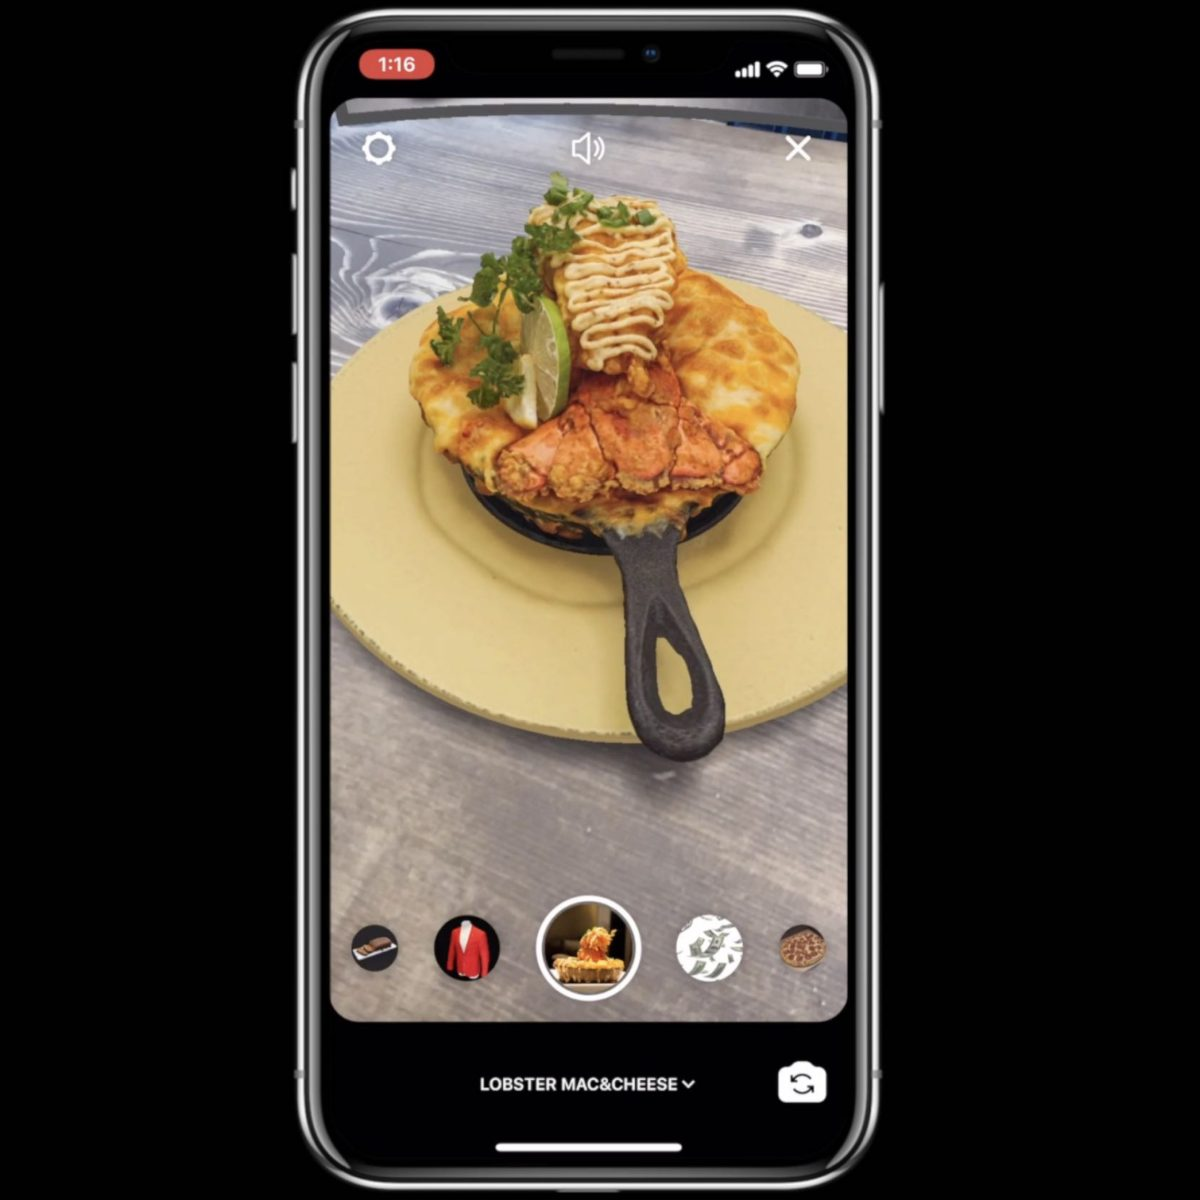 Instagram Effects for Food - Alper Guler - Augmented Reality New York